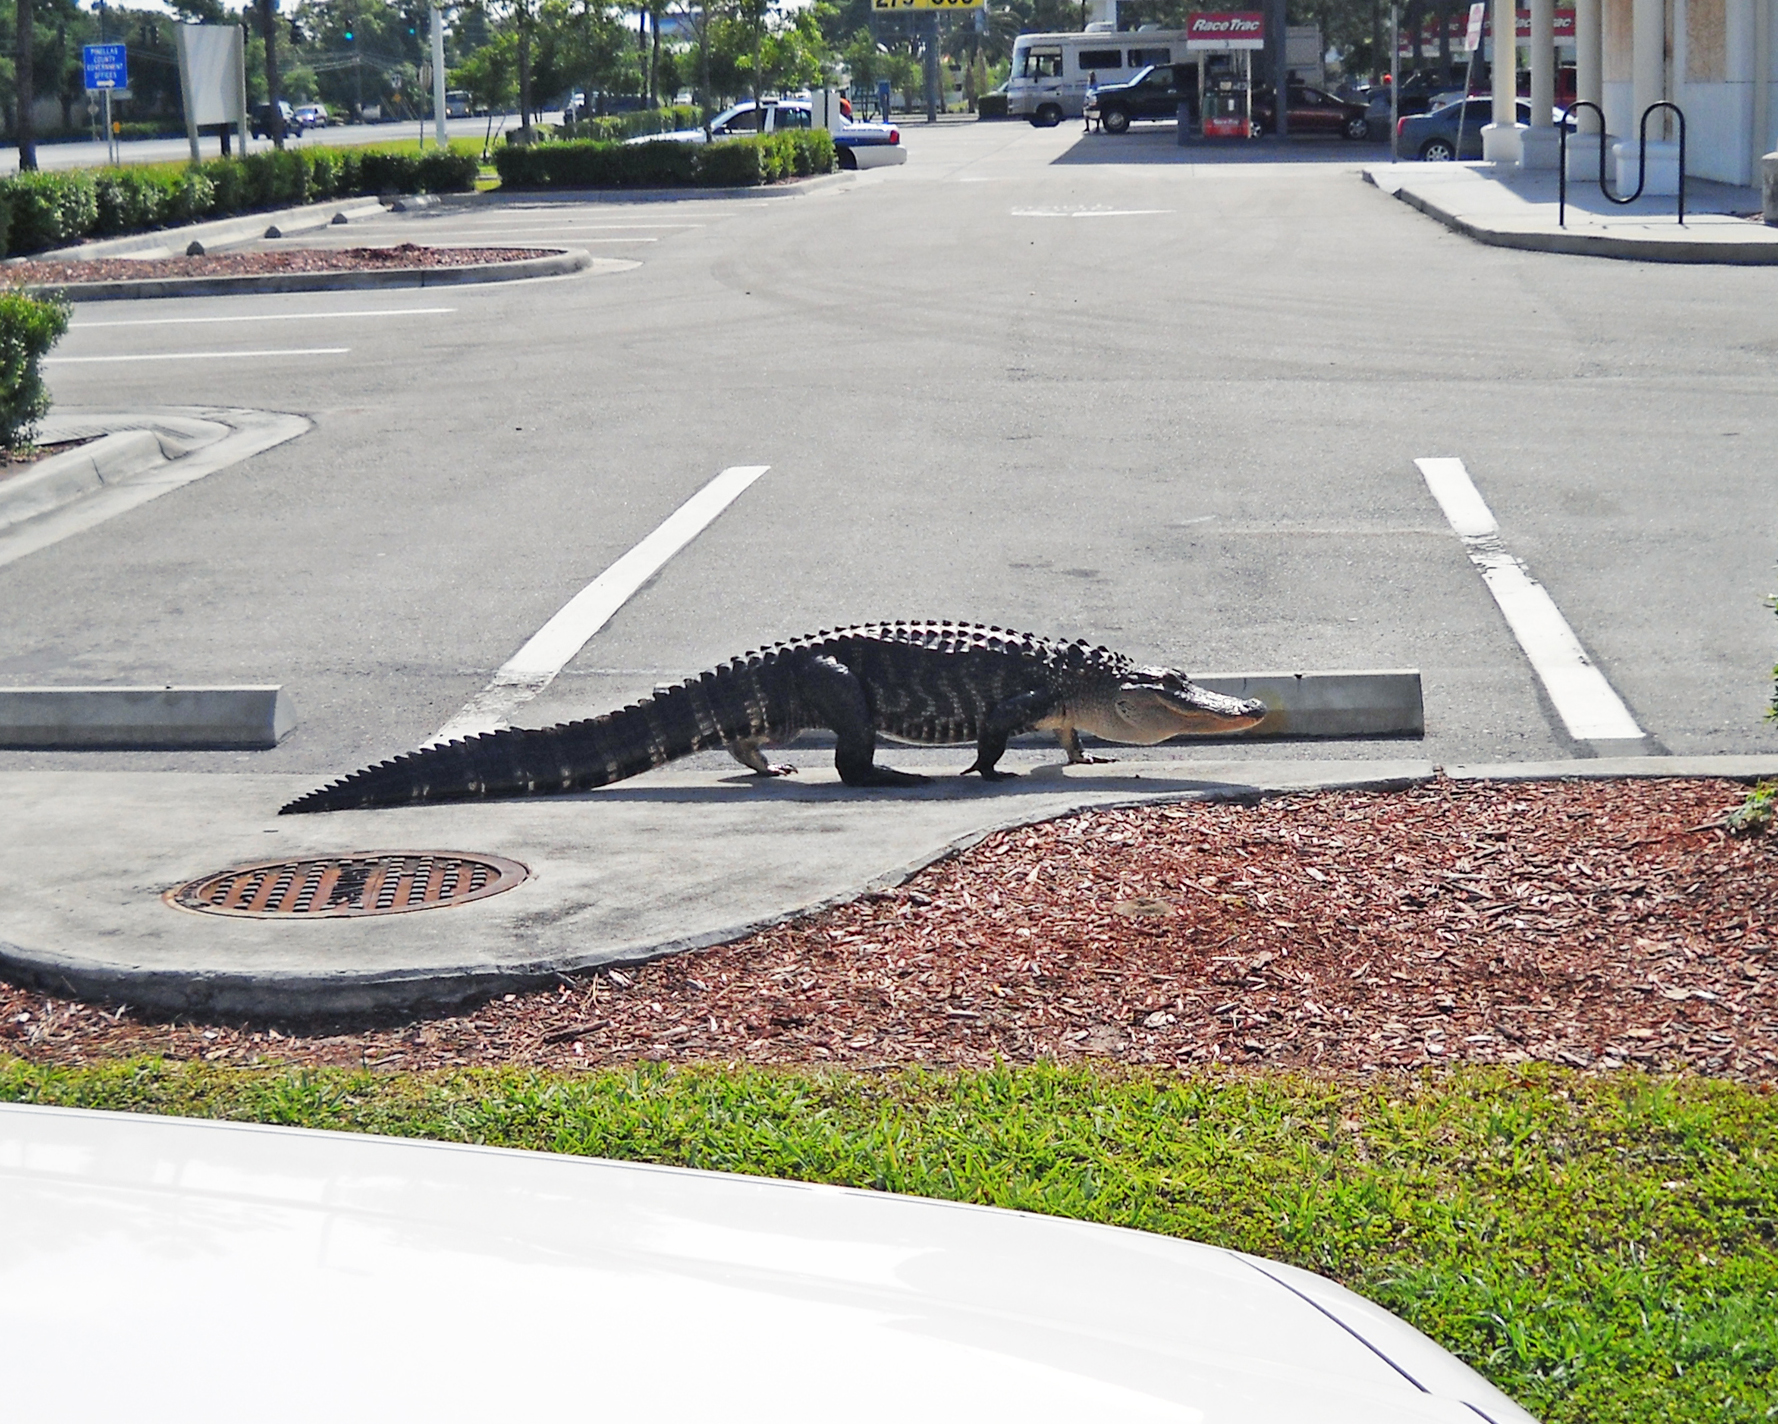 Nine foot parking space equals eight foot alligator.